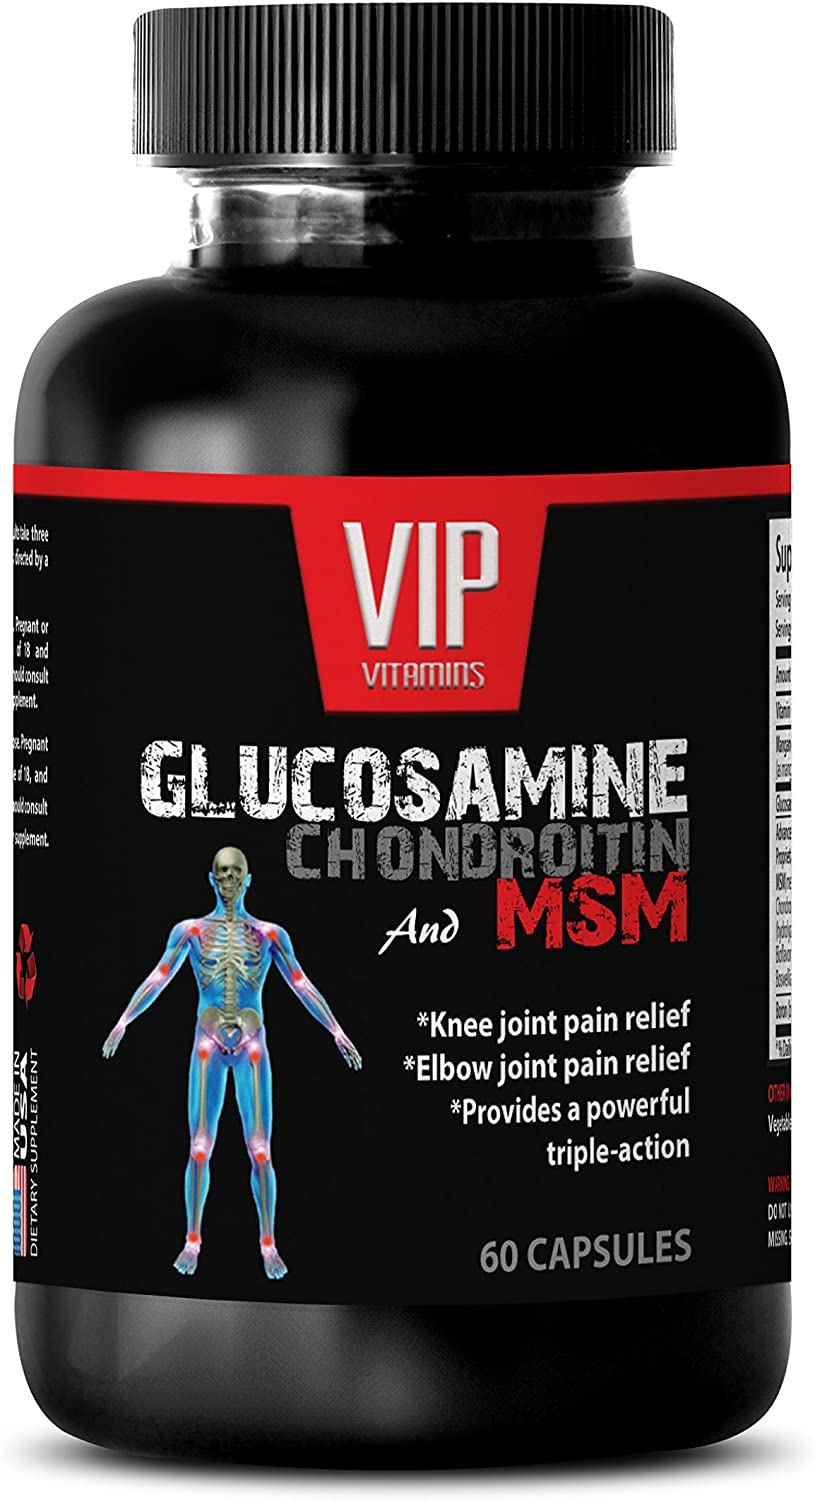 antiaging Tablets - GLUCOSAMINE CHONDROITIN & MSM 3200MG - glucosamine with msm - 1 Bottle 60 Capsules